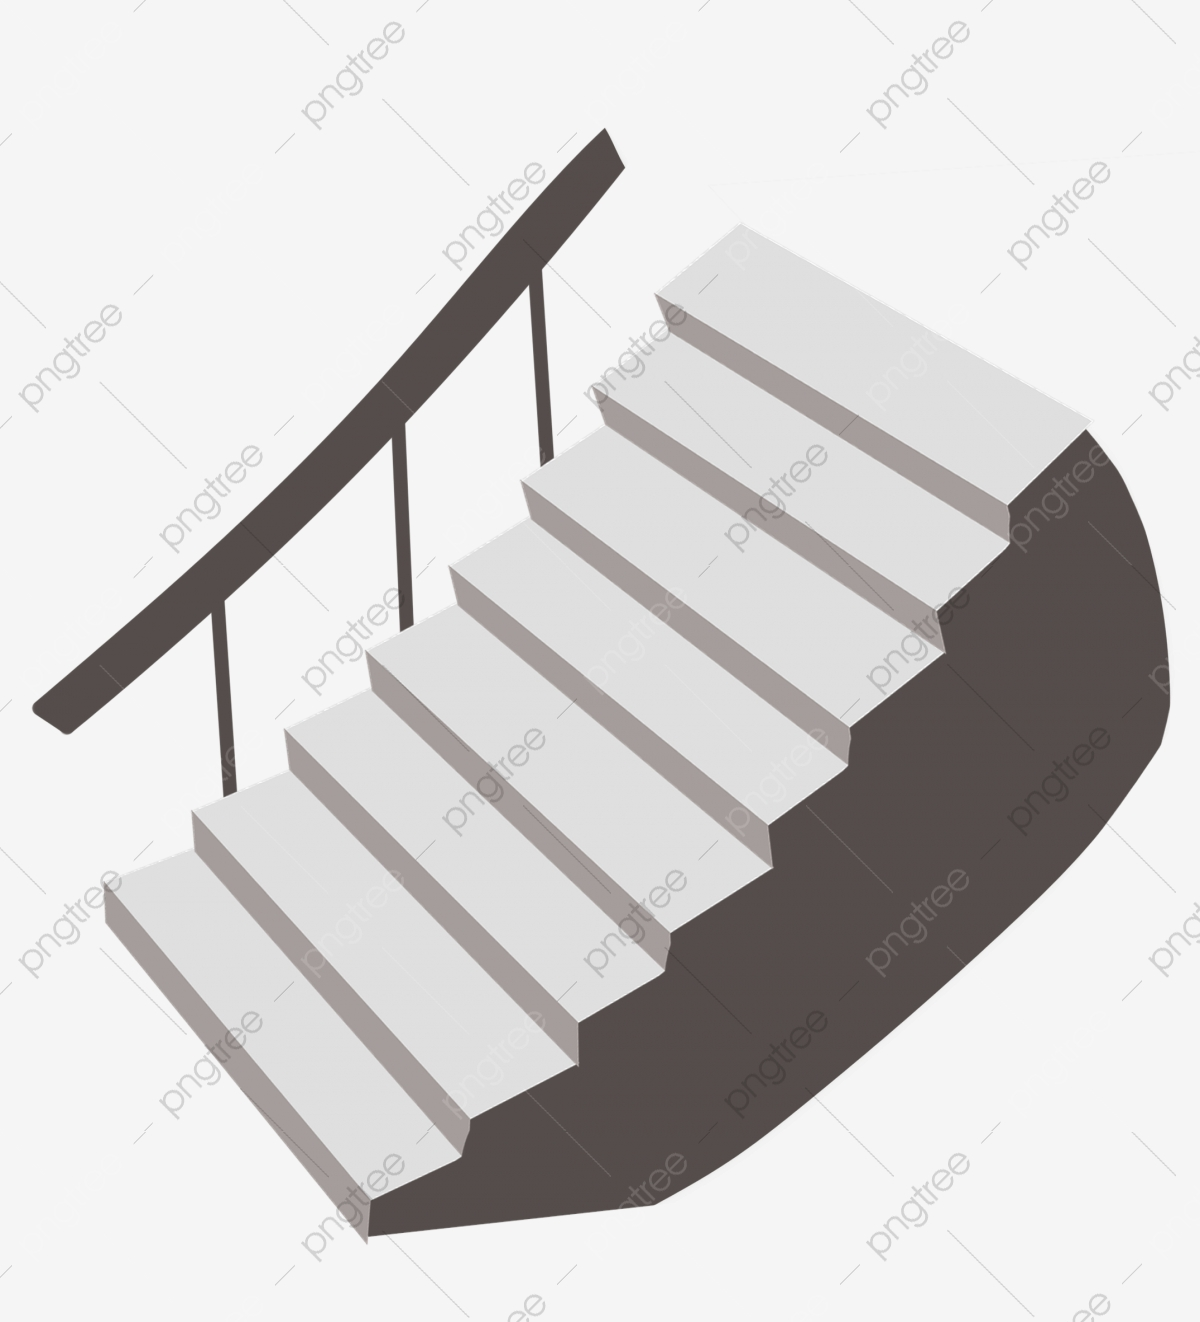 Cartoon Stair Pattern Ascend Climb Up Png Transparent Clipart Image And Psd File For Free Download